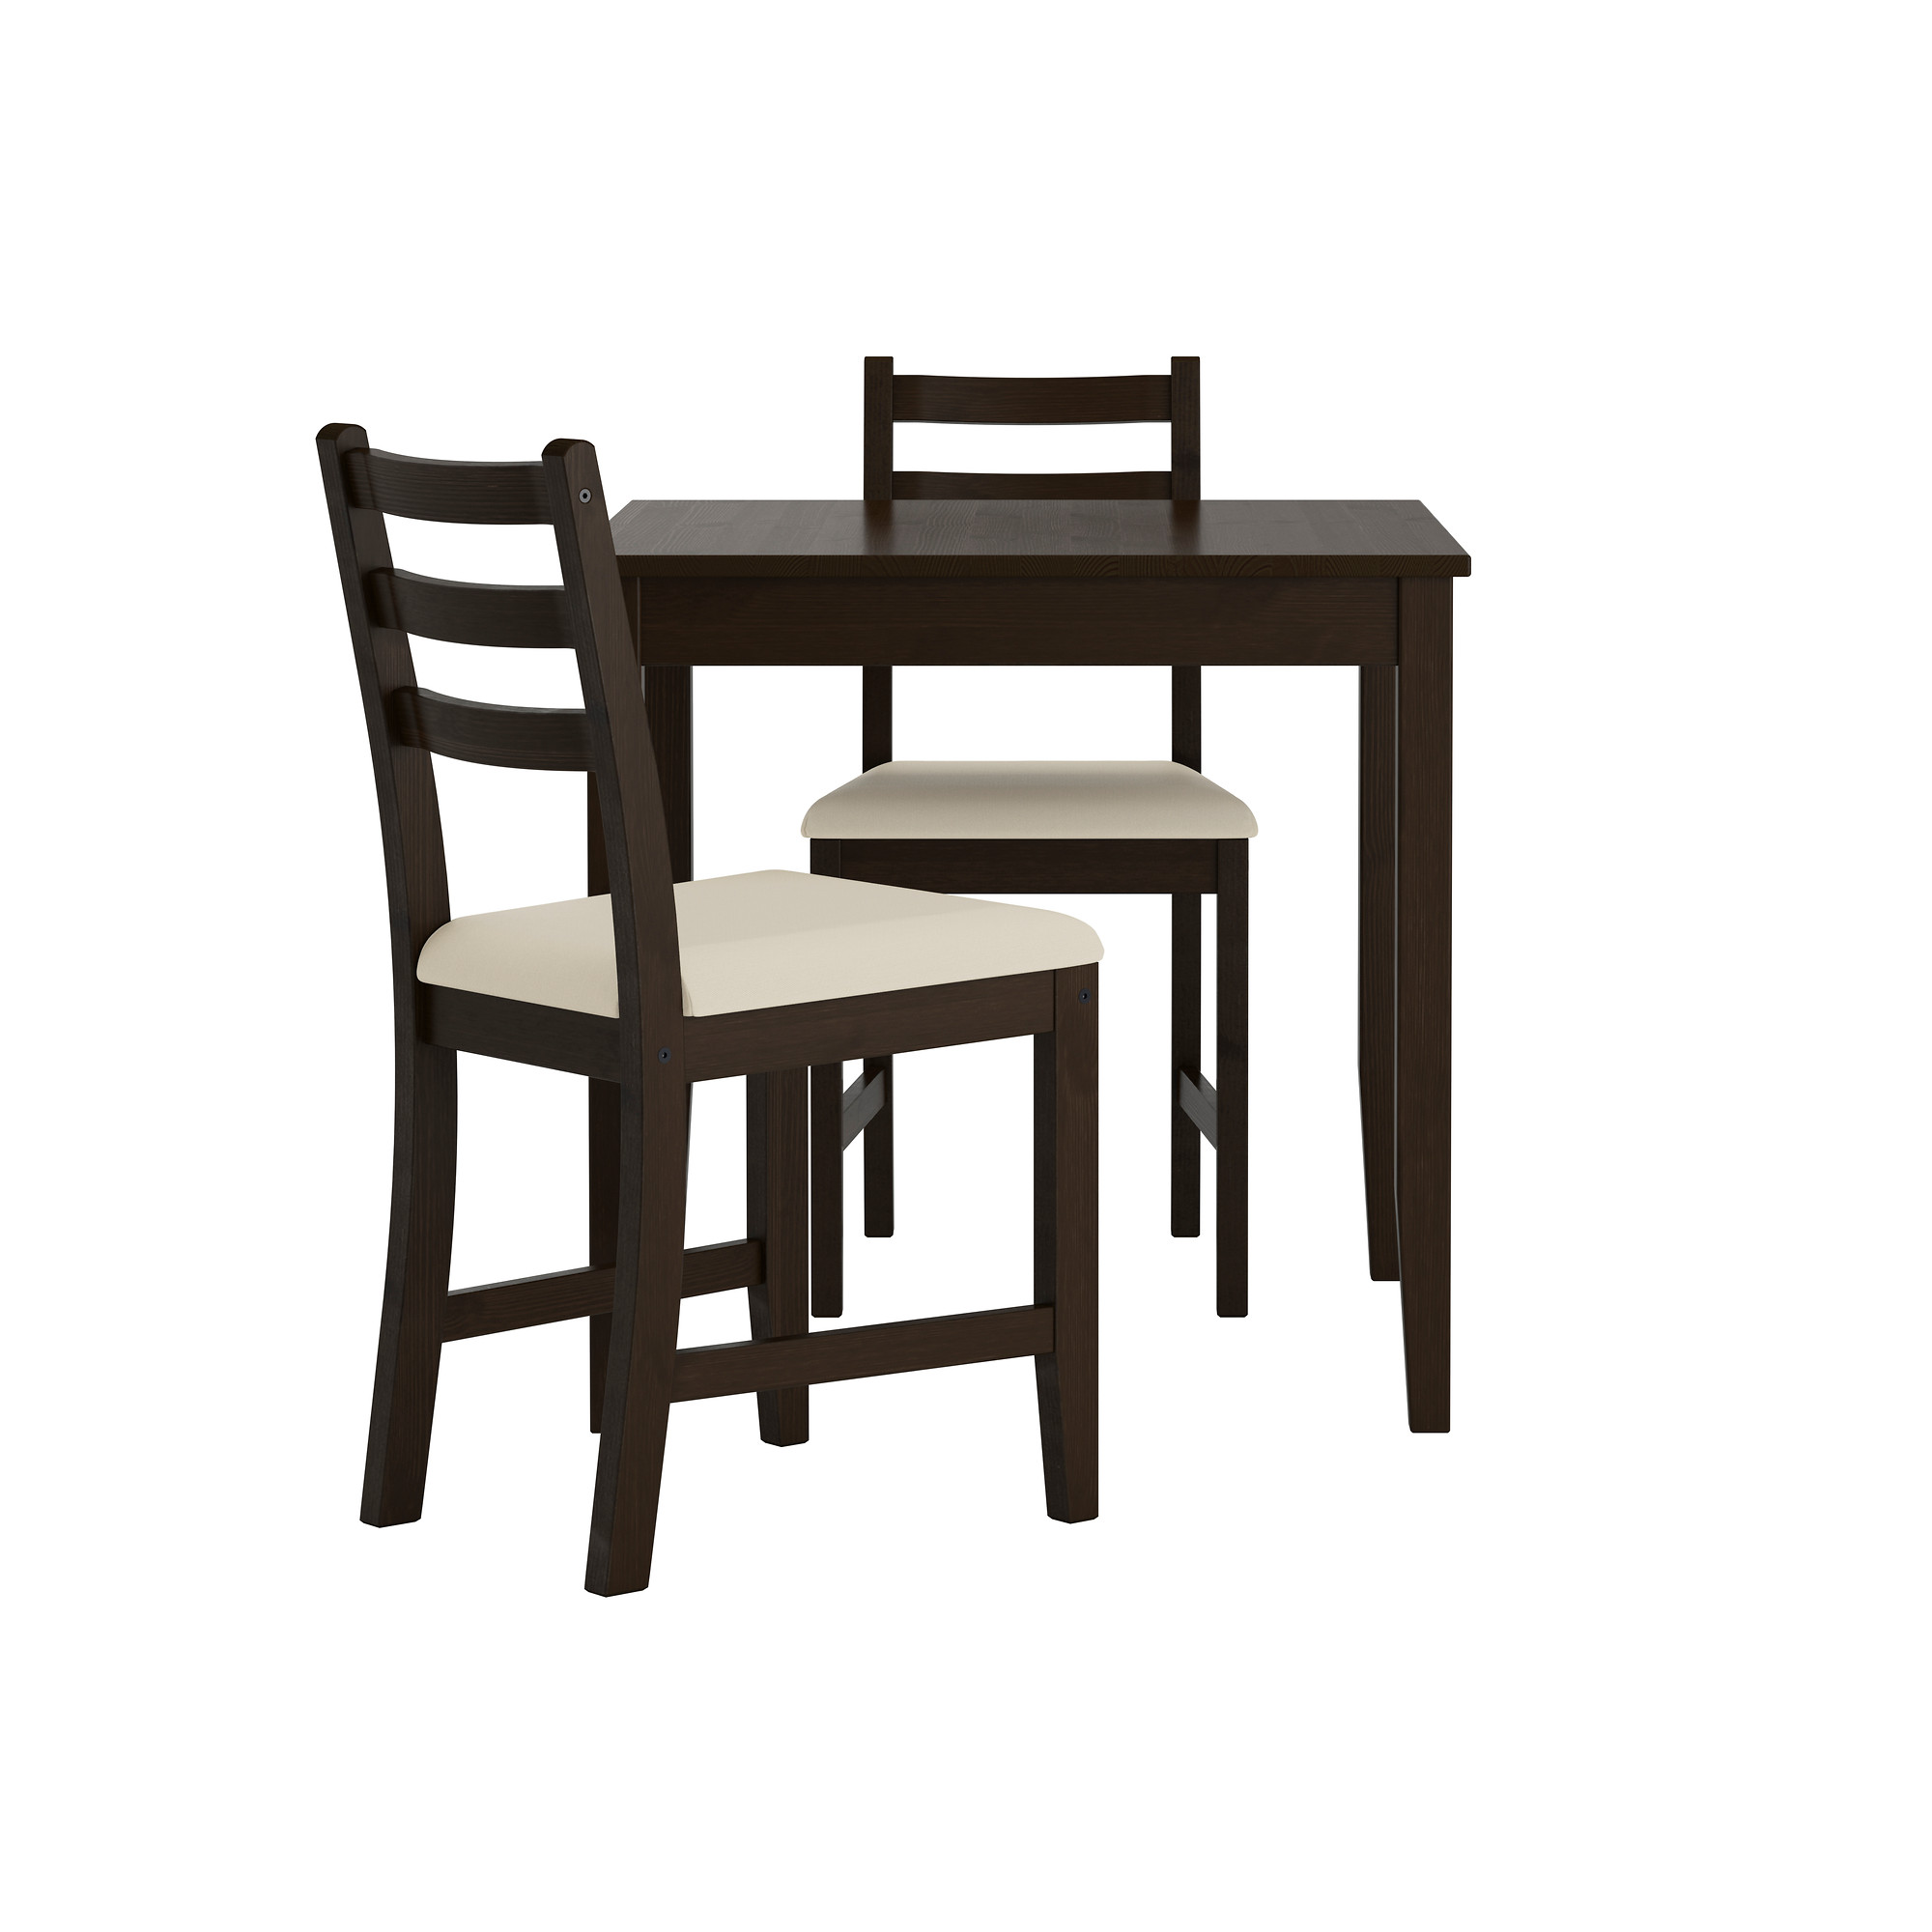 ikea dining room table and chairs suitable with dining room sets at ikea suitable with ikea dining room table and 4 chairs